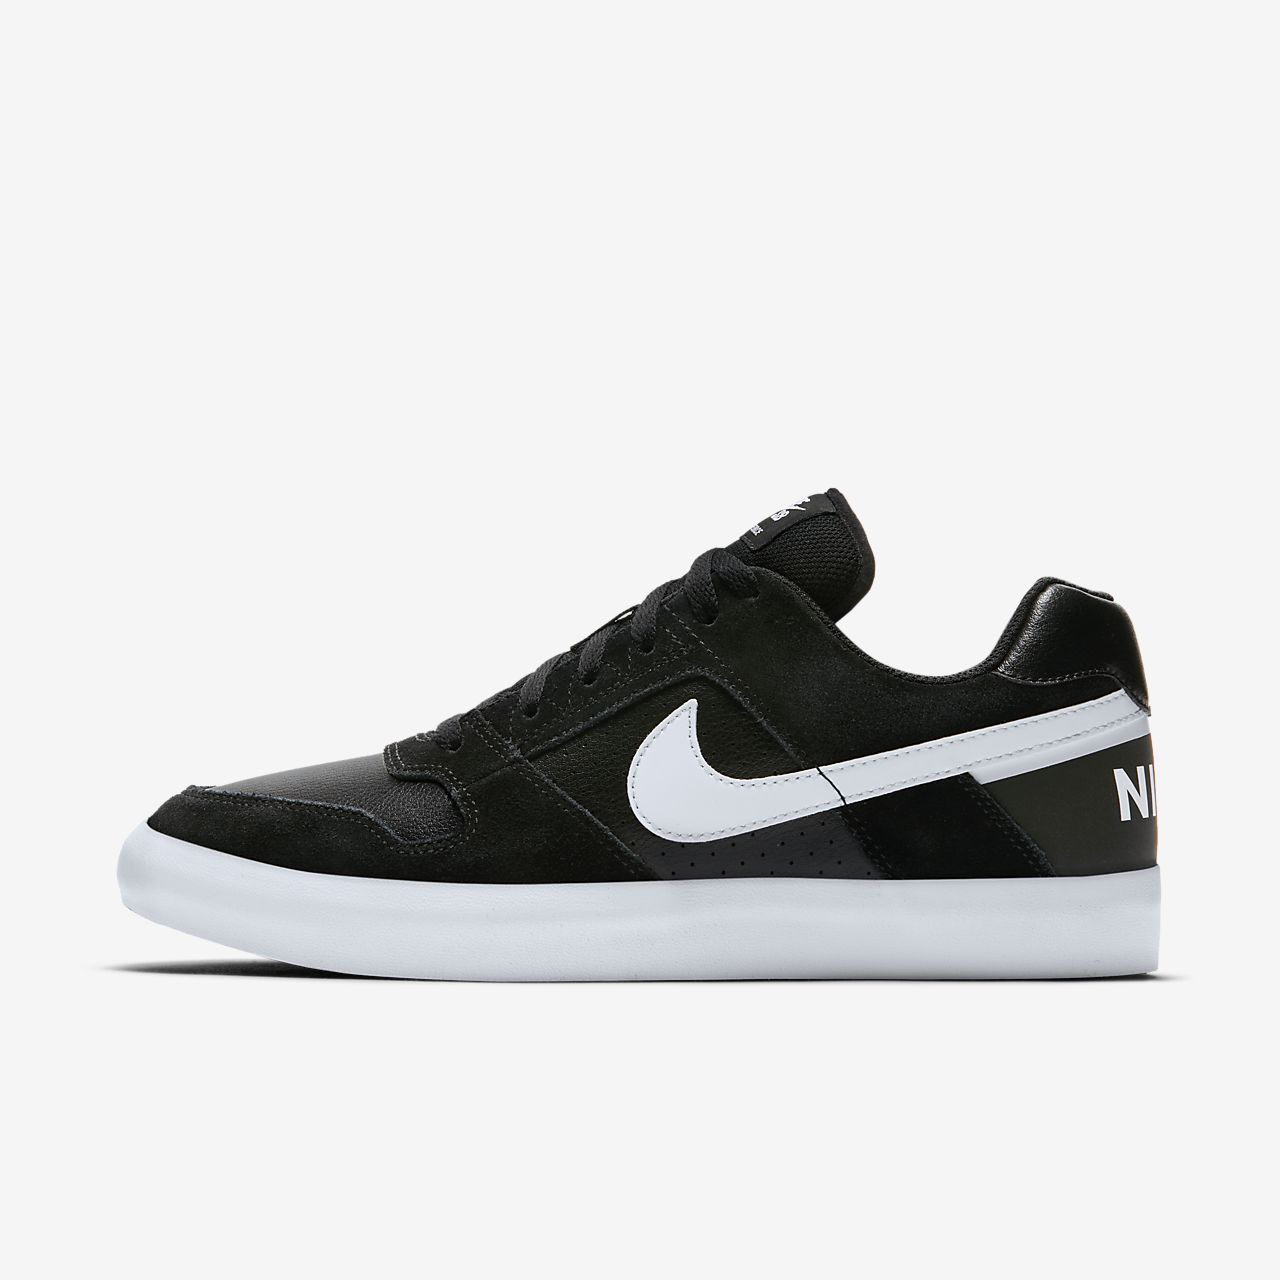 a0ffc32f7236 Nike SB Delta Force Vulc Men s Skateboarding Shoe. Nike.com MY